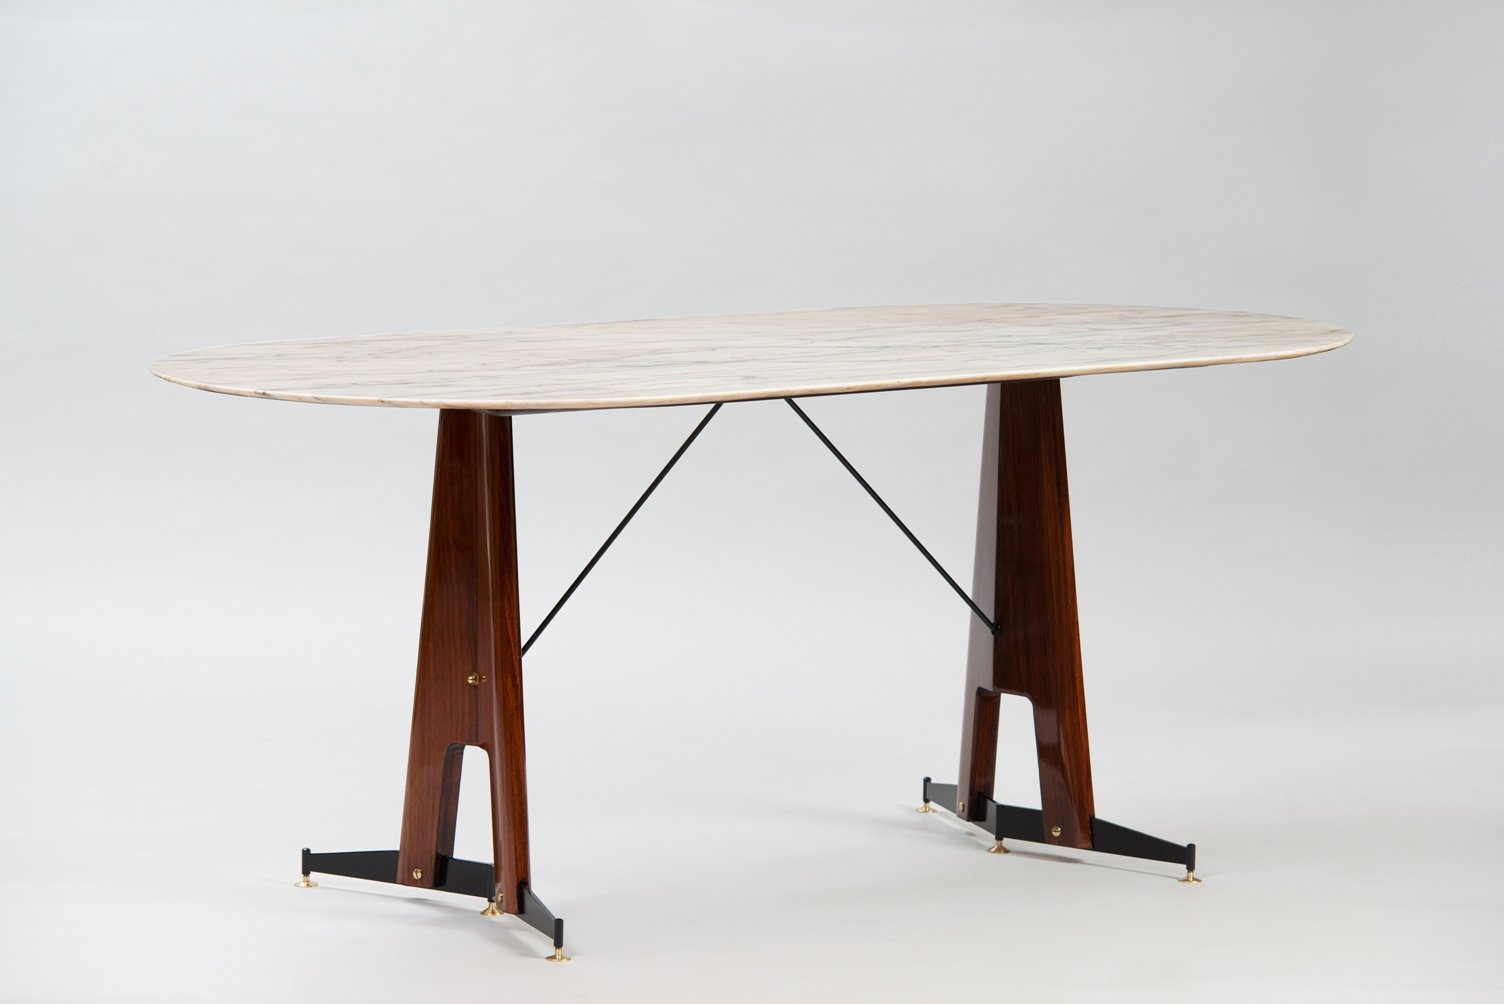 Best table salle a manger marbre design ideas lalawgroup for Table ronde salle a manger